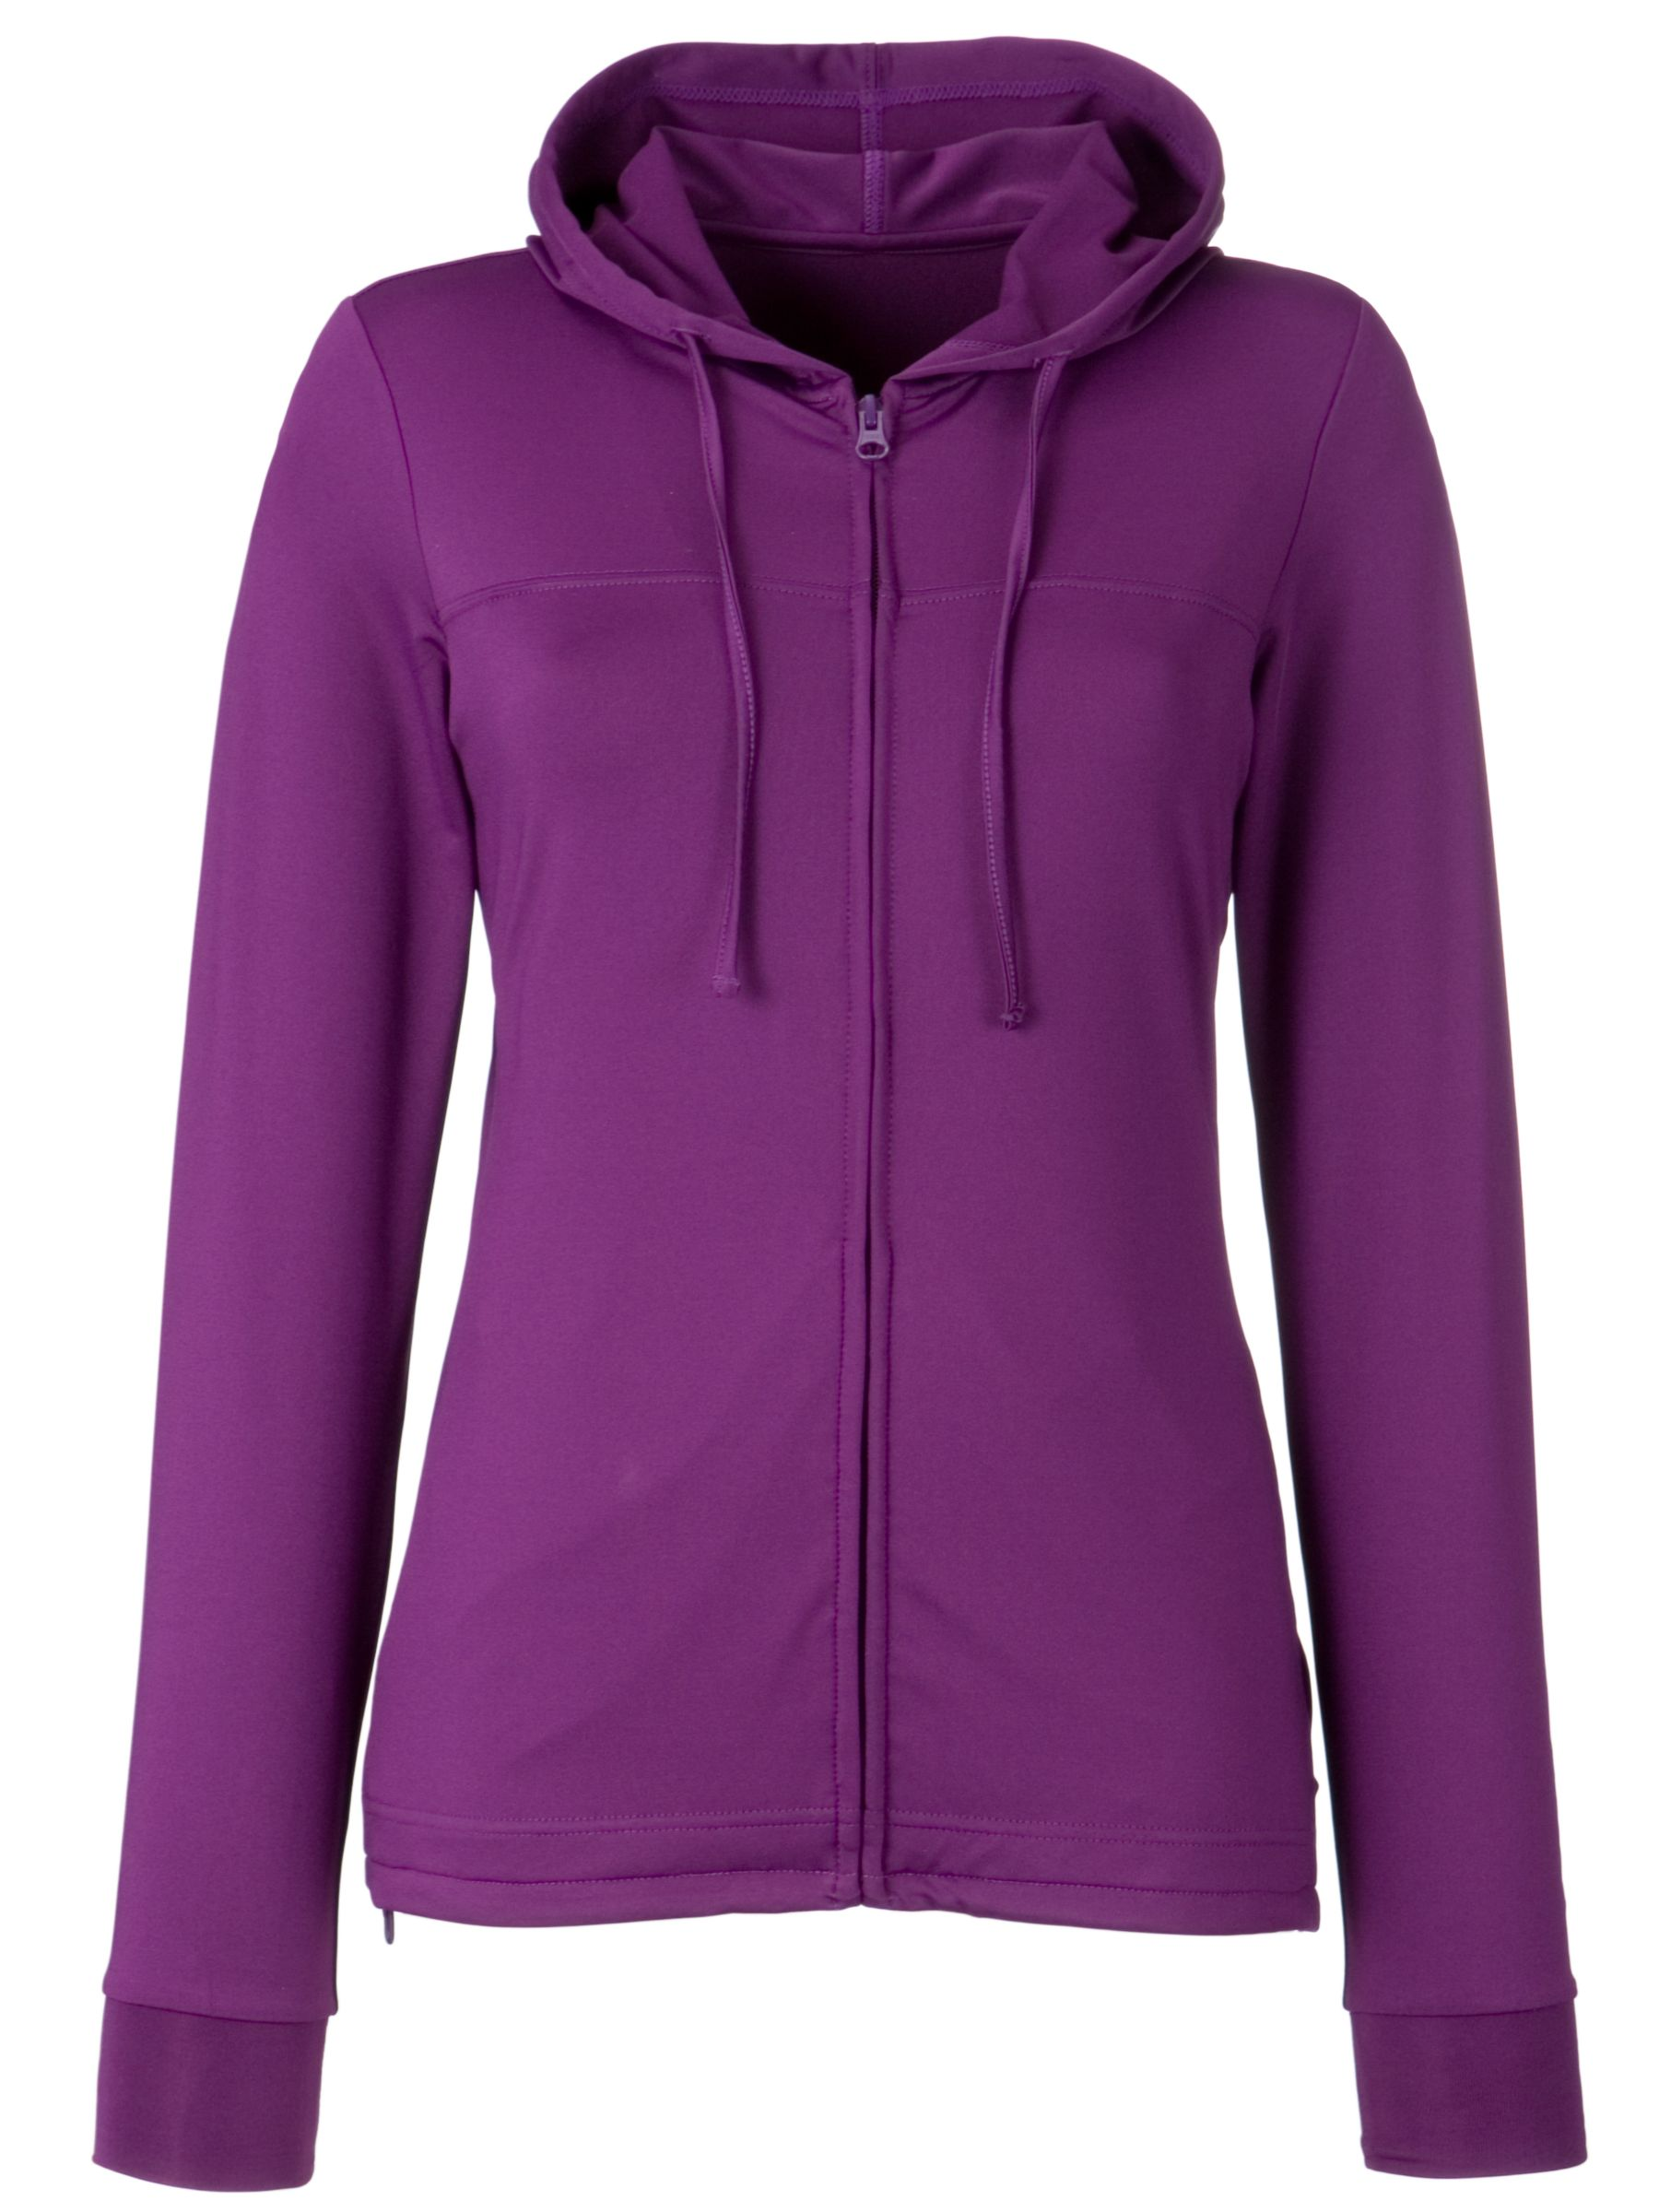 John Lewis Active Hooded Cover-Up Top, Purple